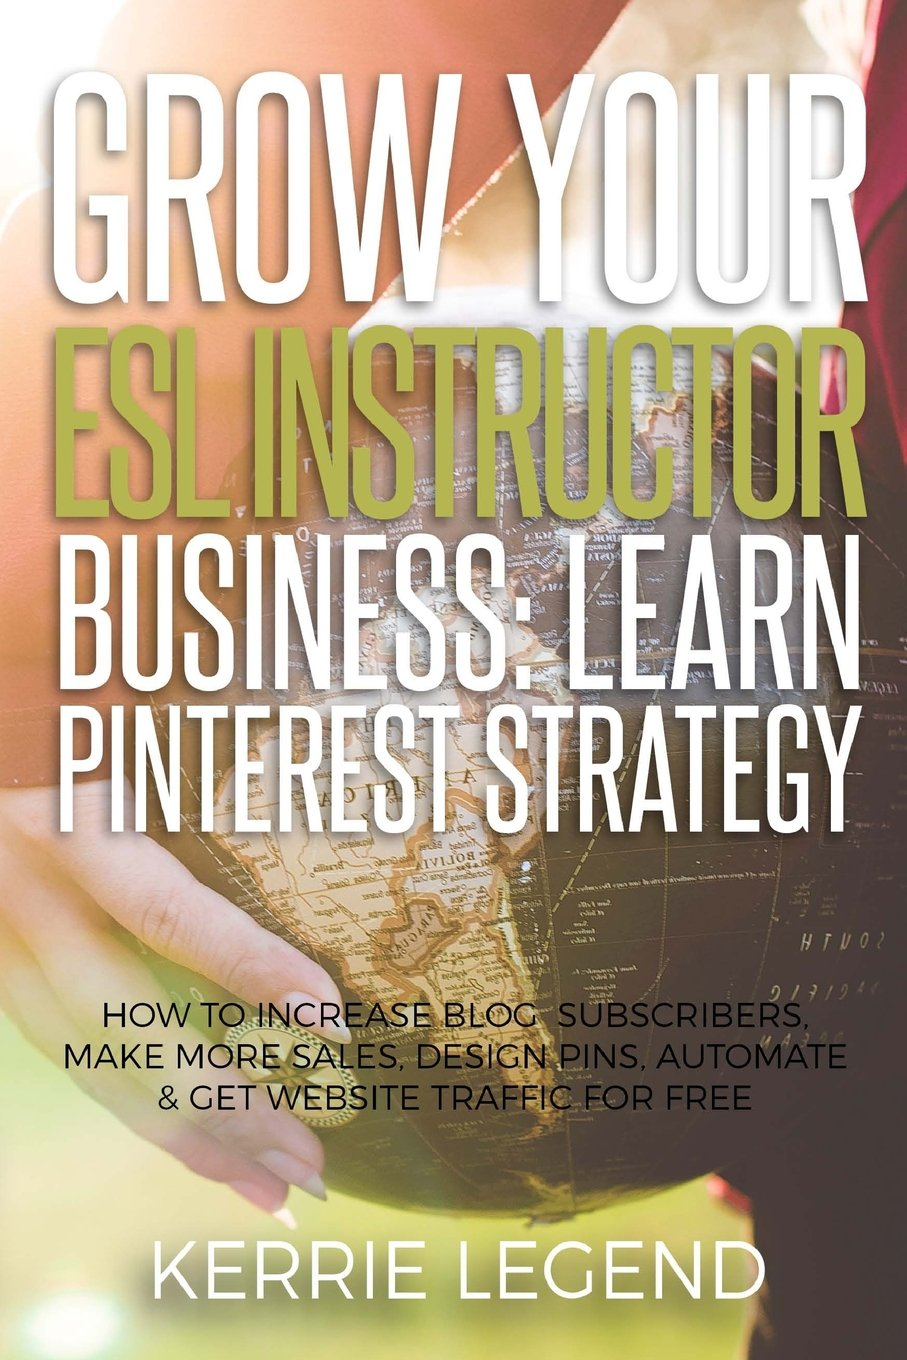 Grow Your ESL Instructor Business: Learn Pinterest Strategy: How to Increase Blog Subscribers, Make More Sales, Design Pins, Automate & Get Website Traffic for Free pdf epub